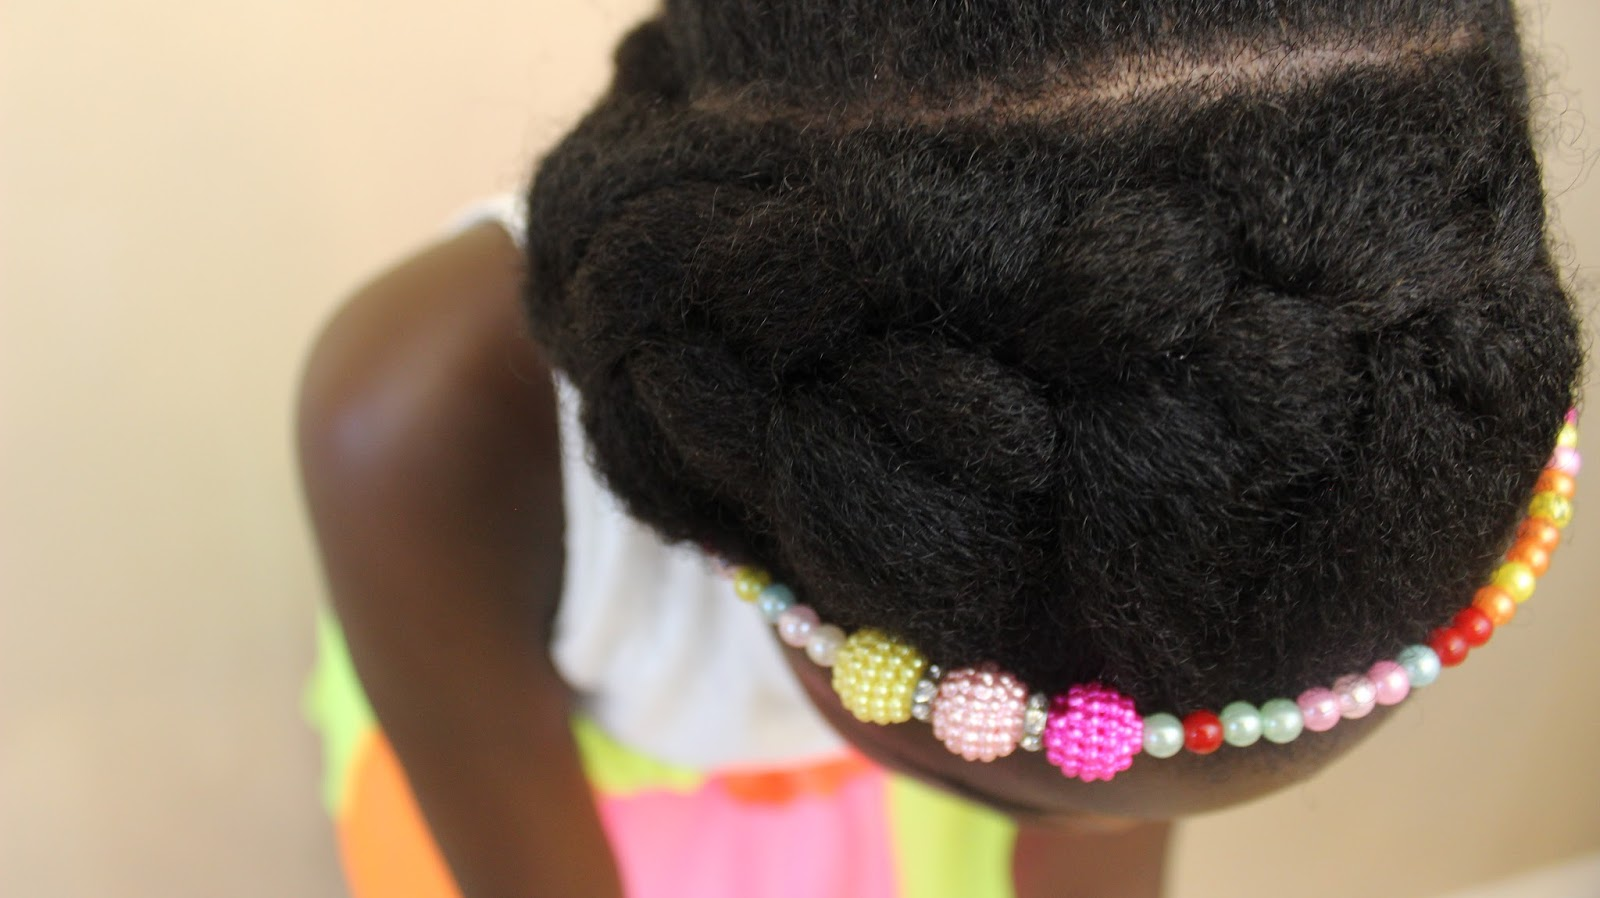 A Cute Idea Especially For Children Is These Intersecting Braids That Are Crisscrossed Cool The Kids Sure To Love